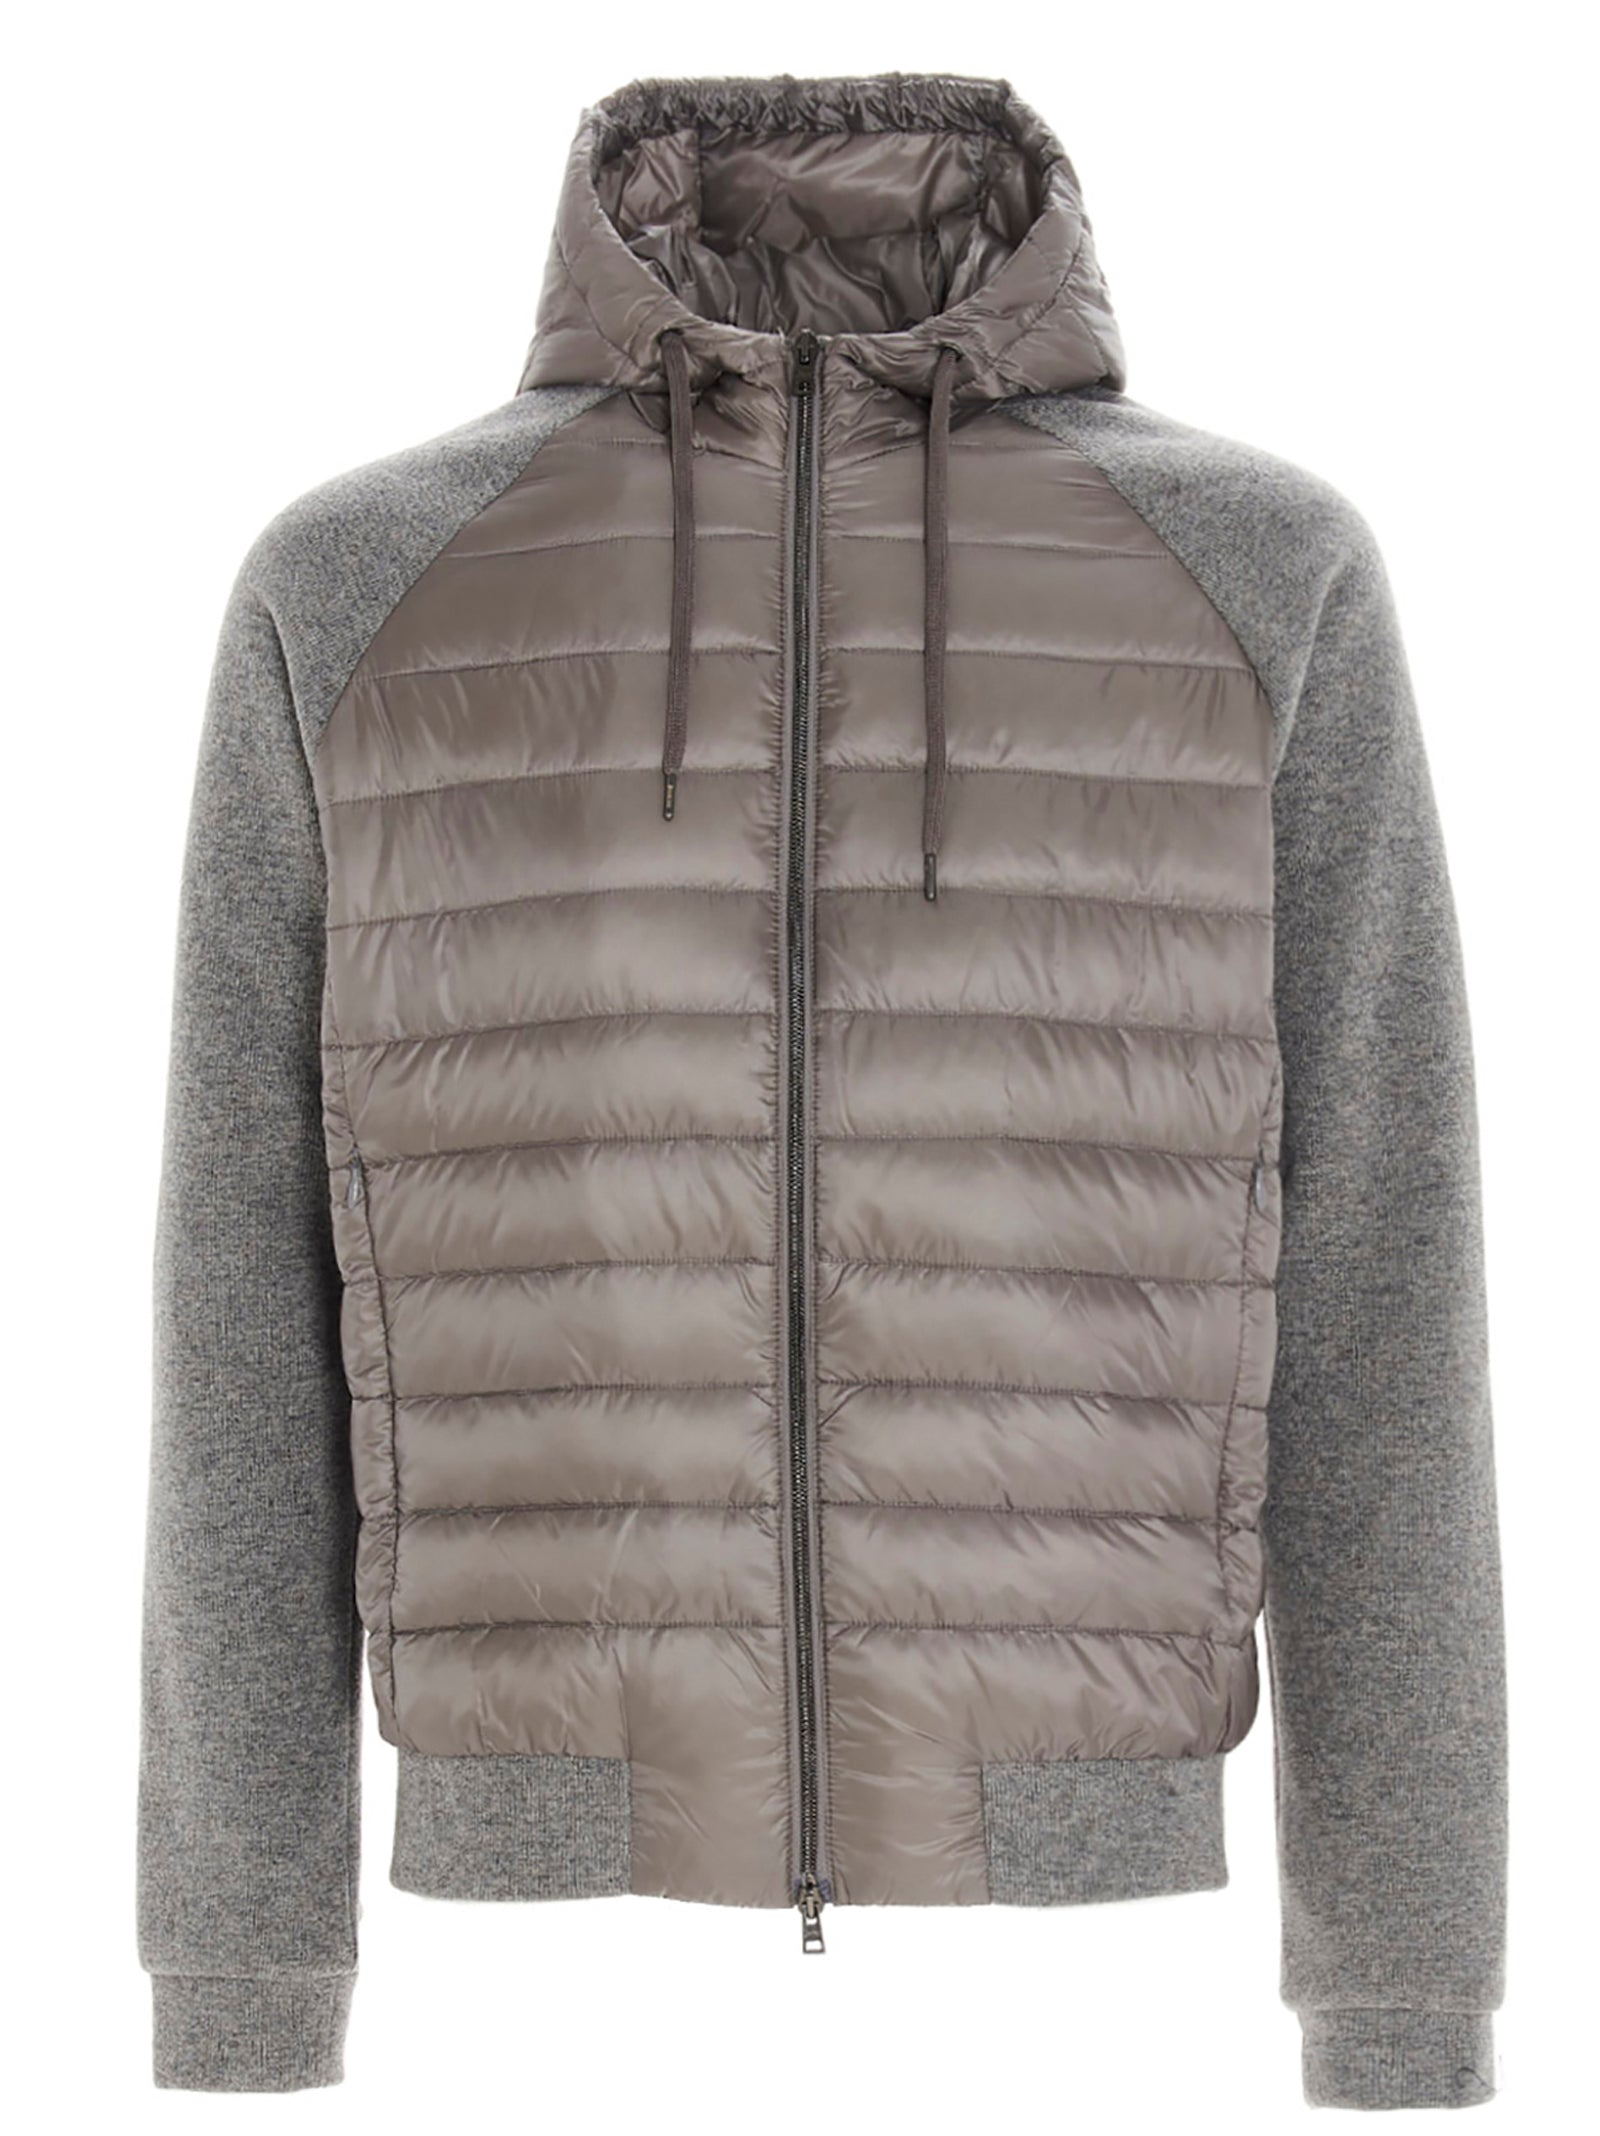 Herno HERNO KNITTED PADDED JACKET